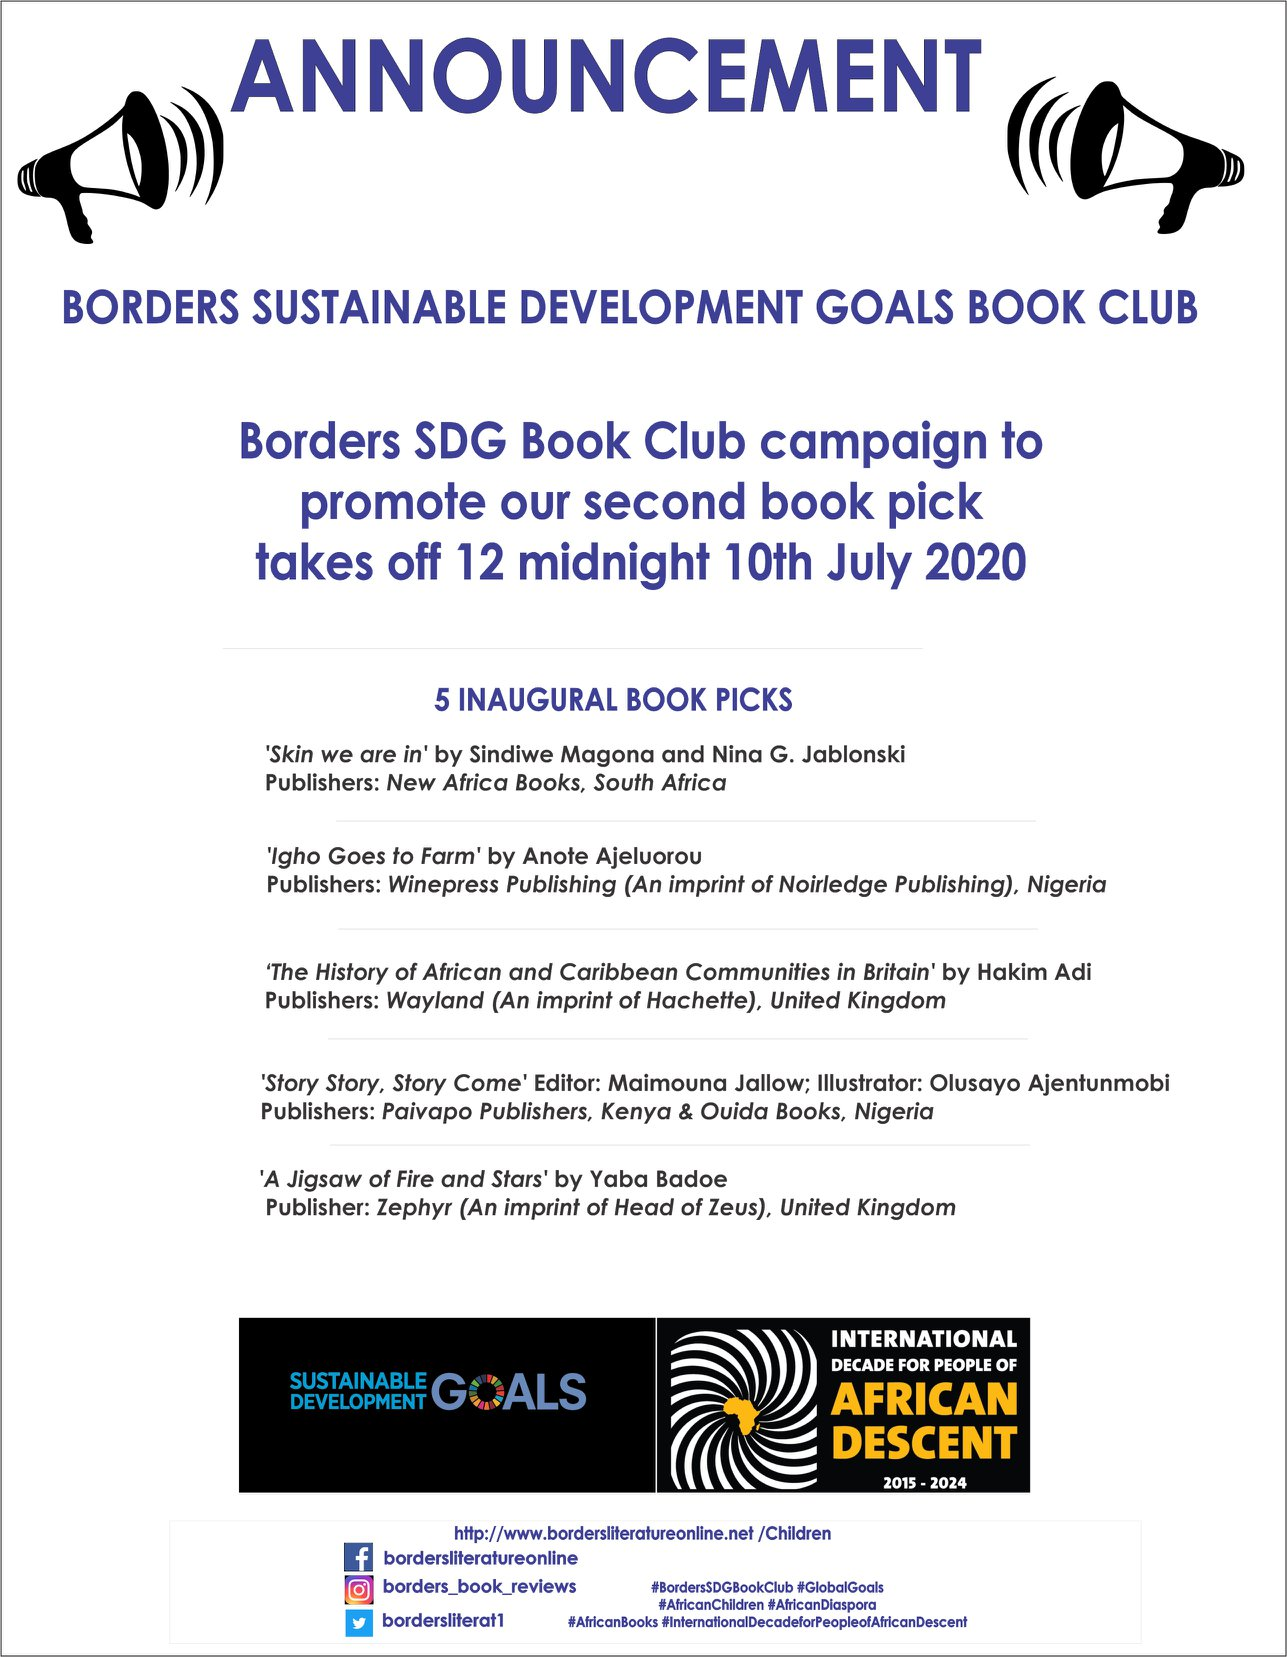 Borders SDG Book Club 5 Inaugural Book Picks July